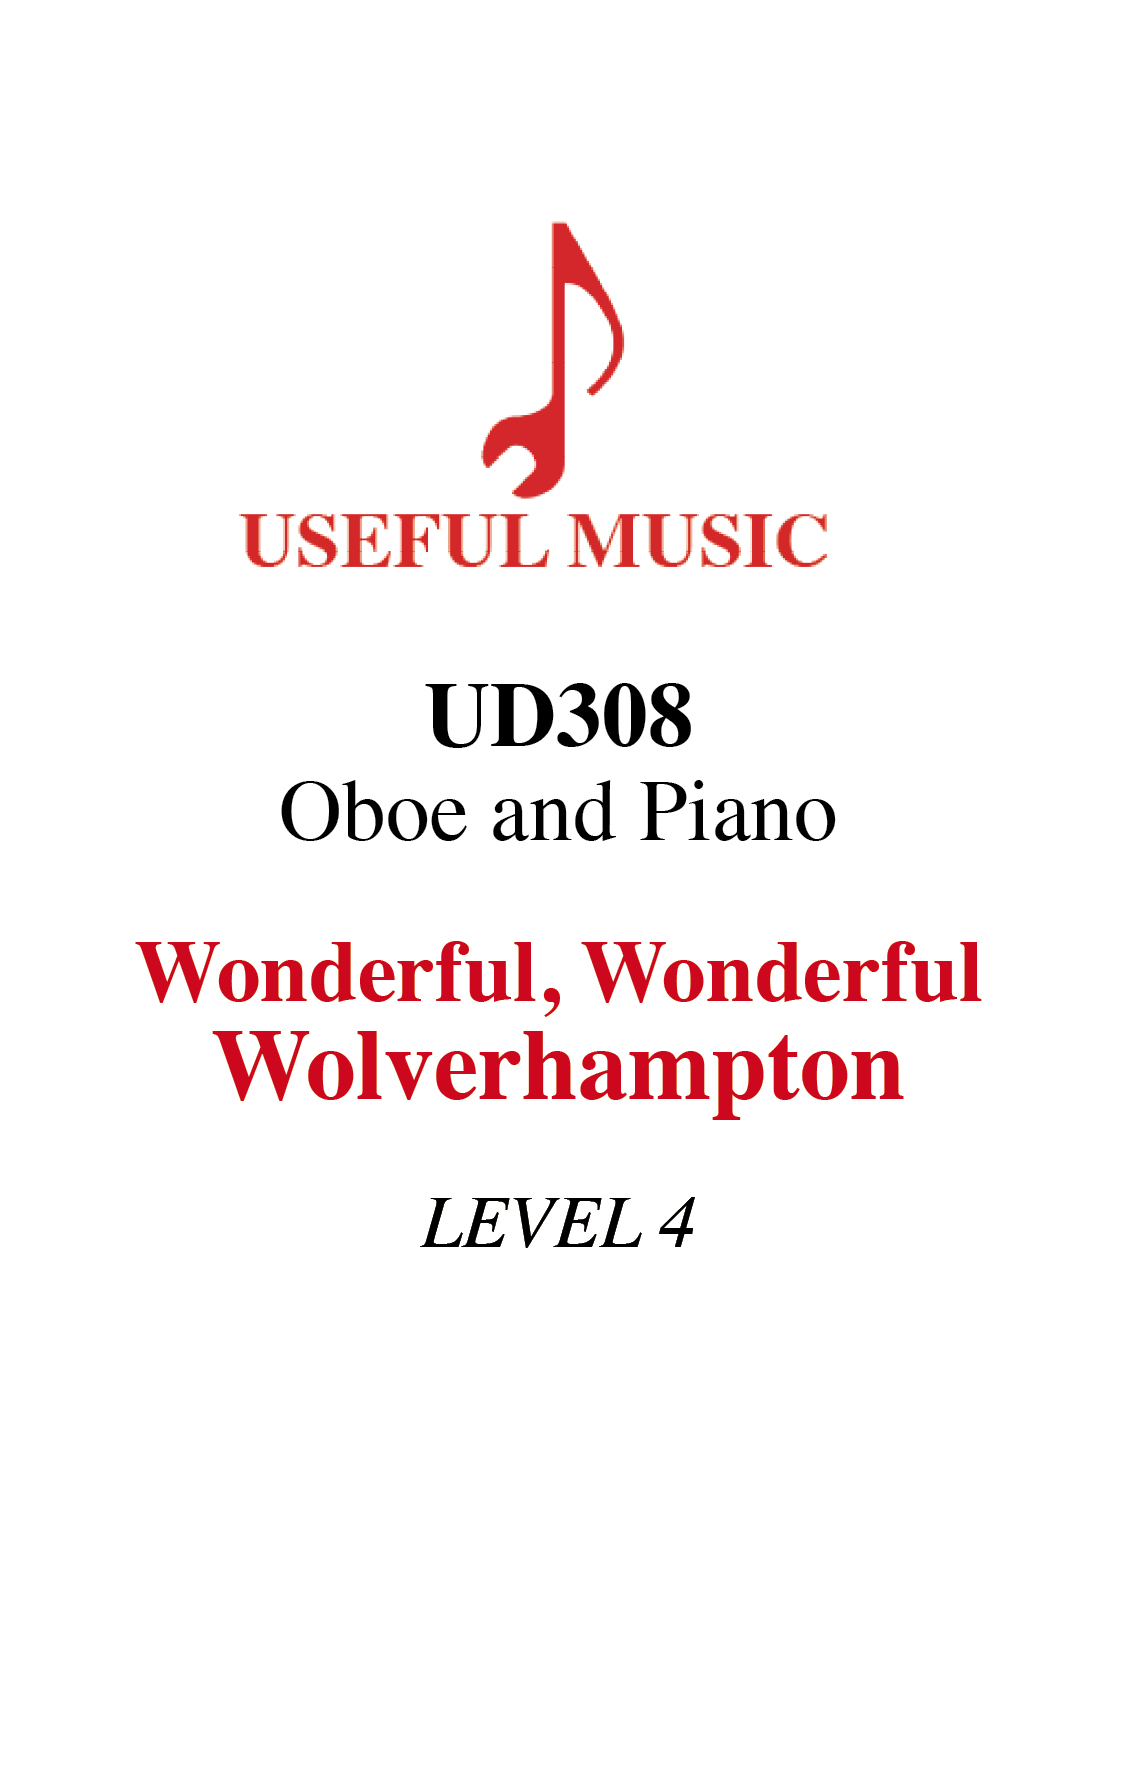 Wonderful Wonderful Wolverhampton – oboe and piano